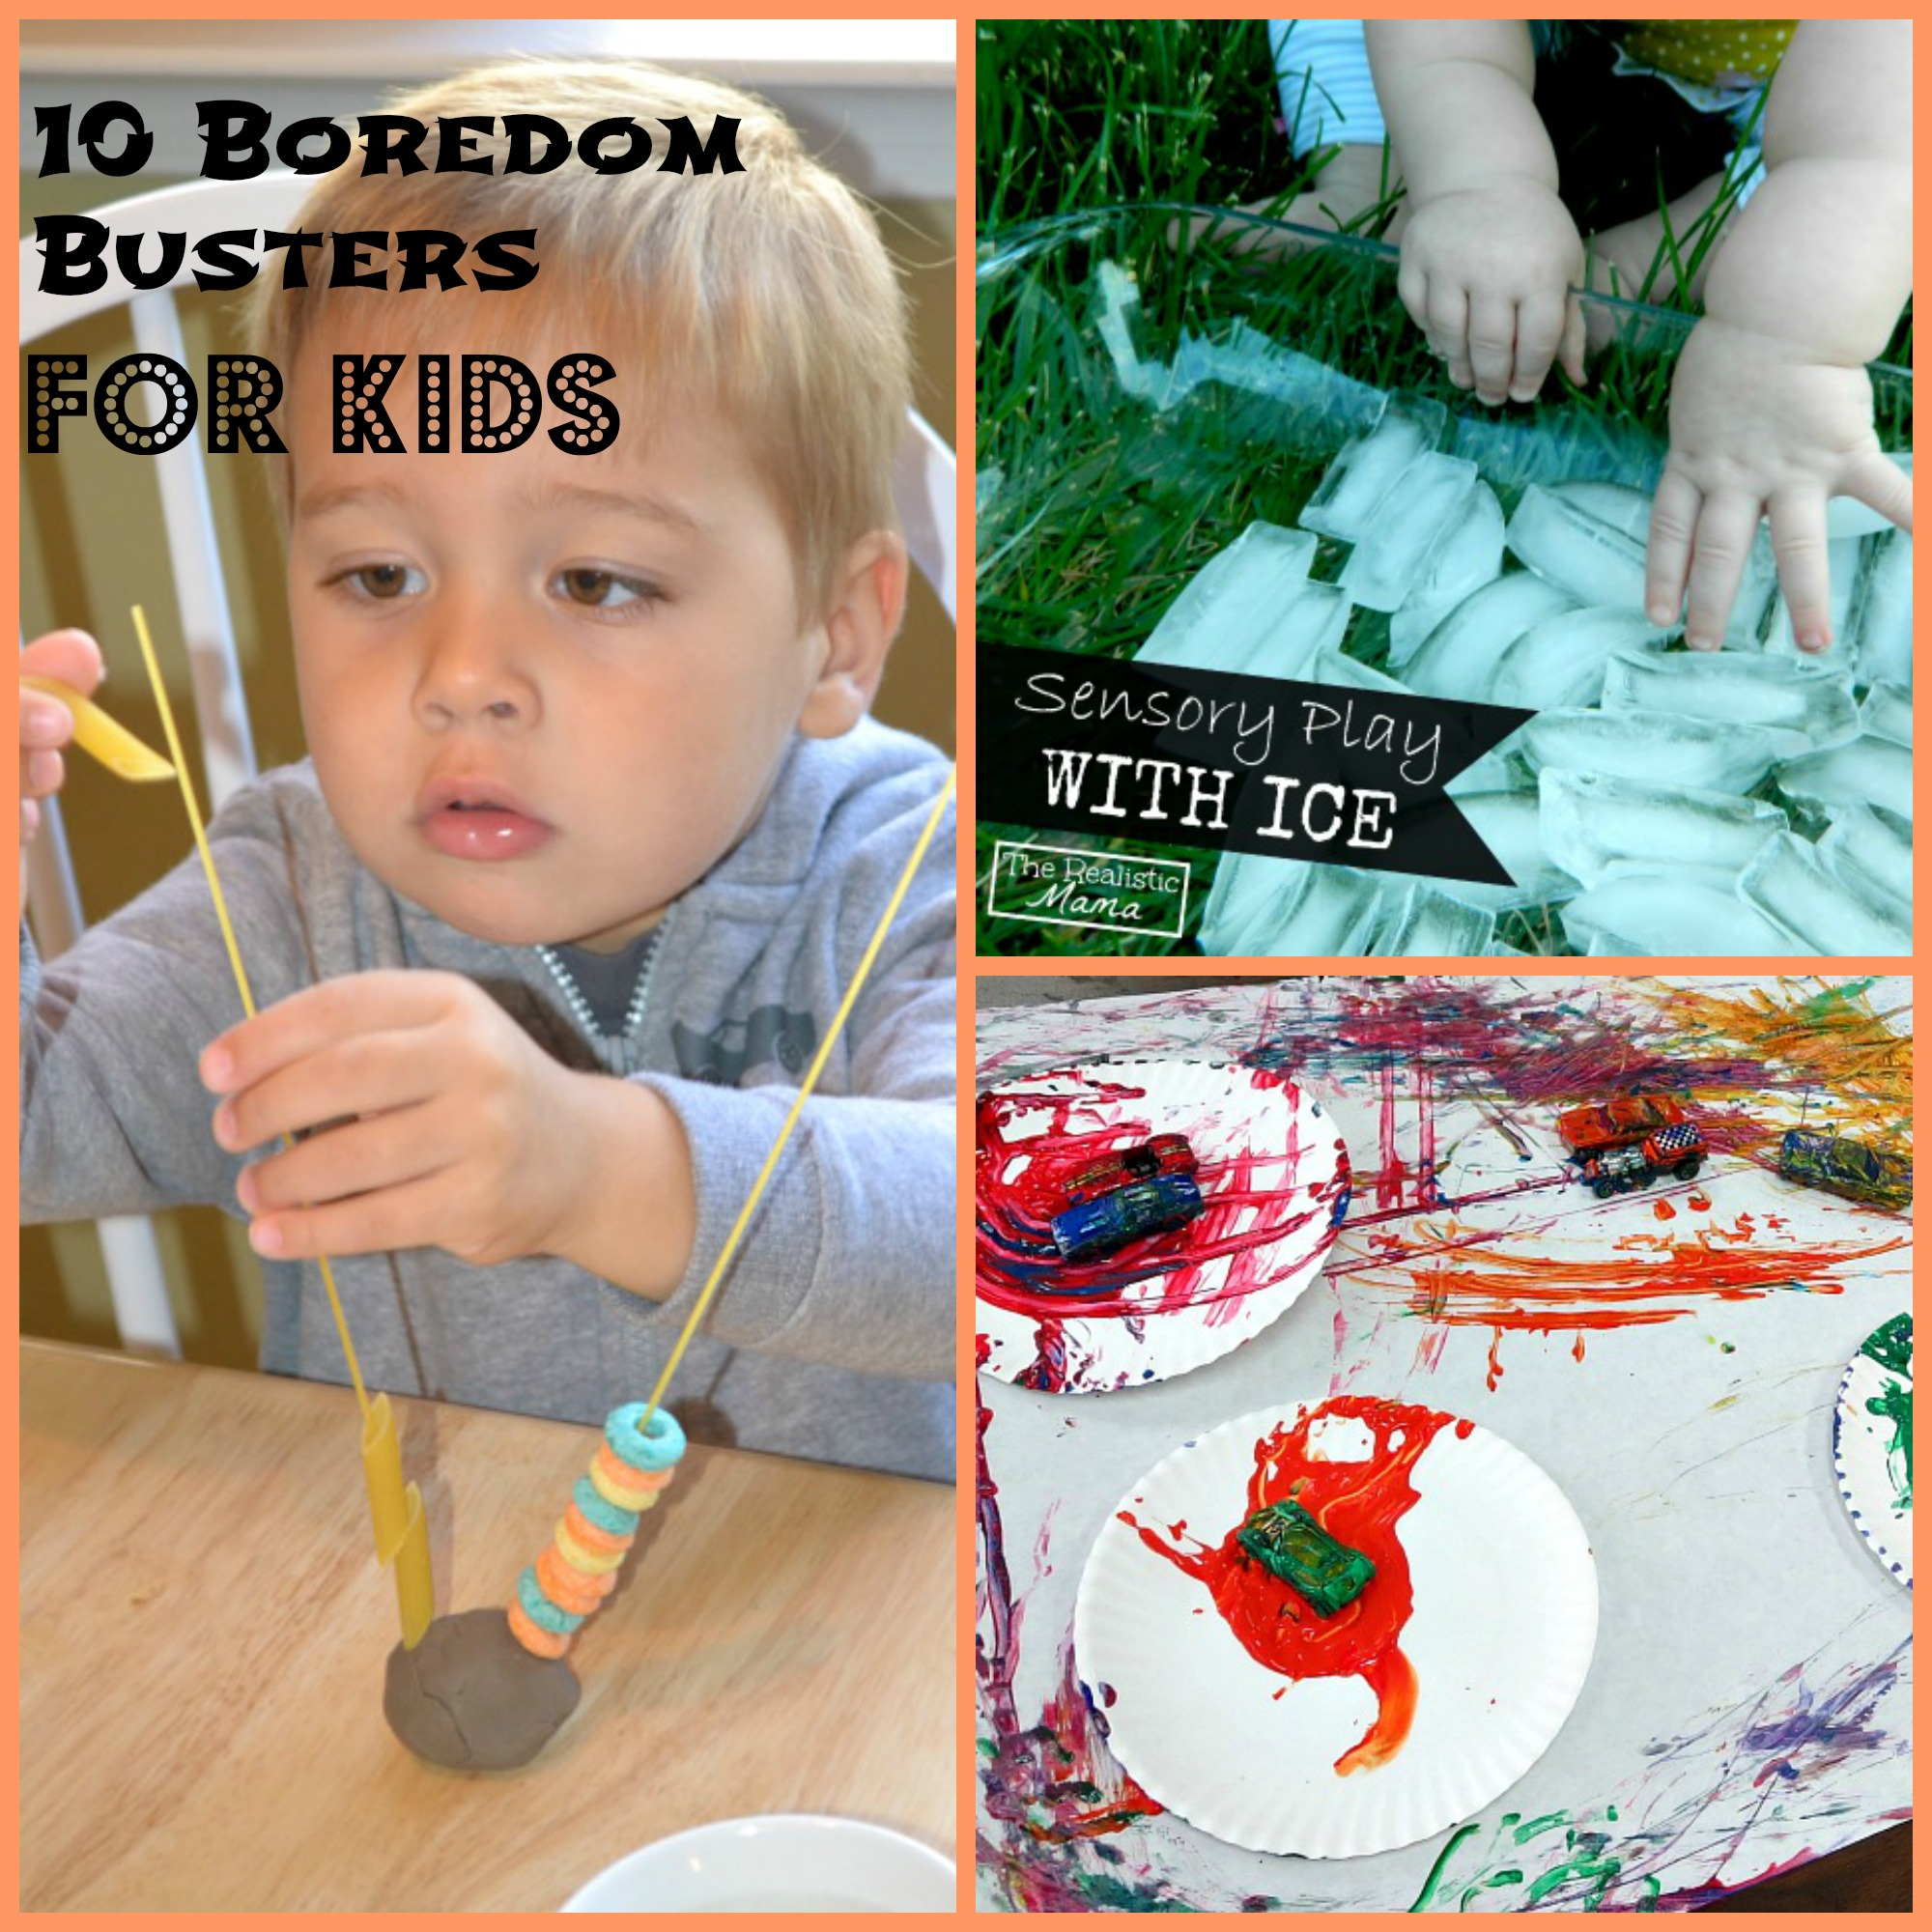 10 Boredom Busters Using Things You Already Have At Home